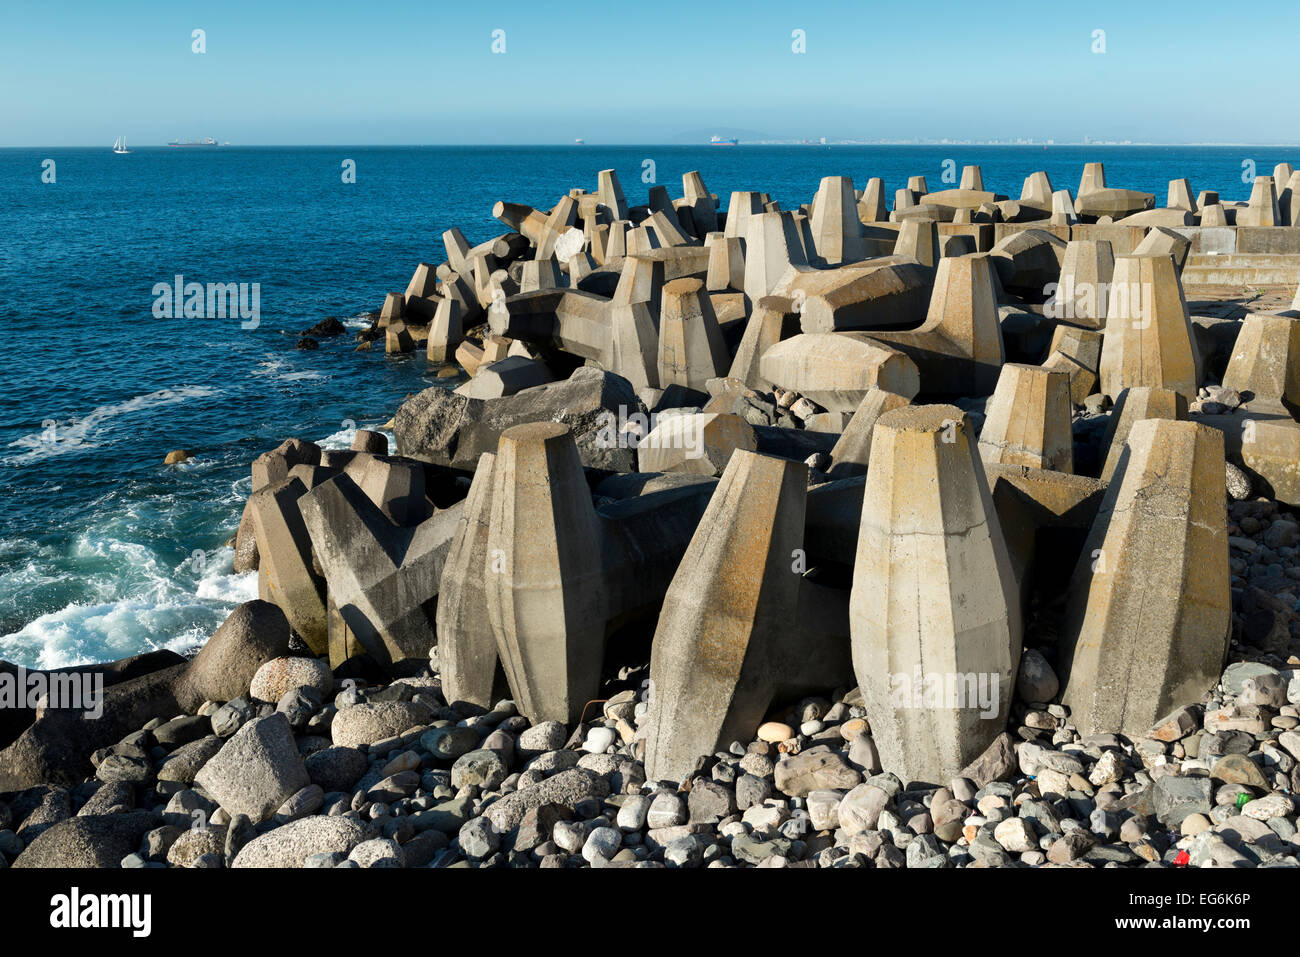 Defense concrete blocks at a pier, Cape Town, South Africa - Stock Image